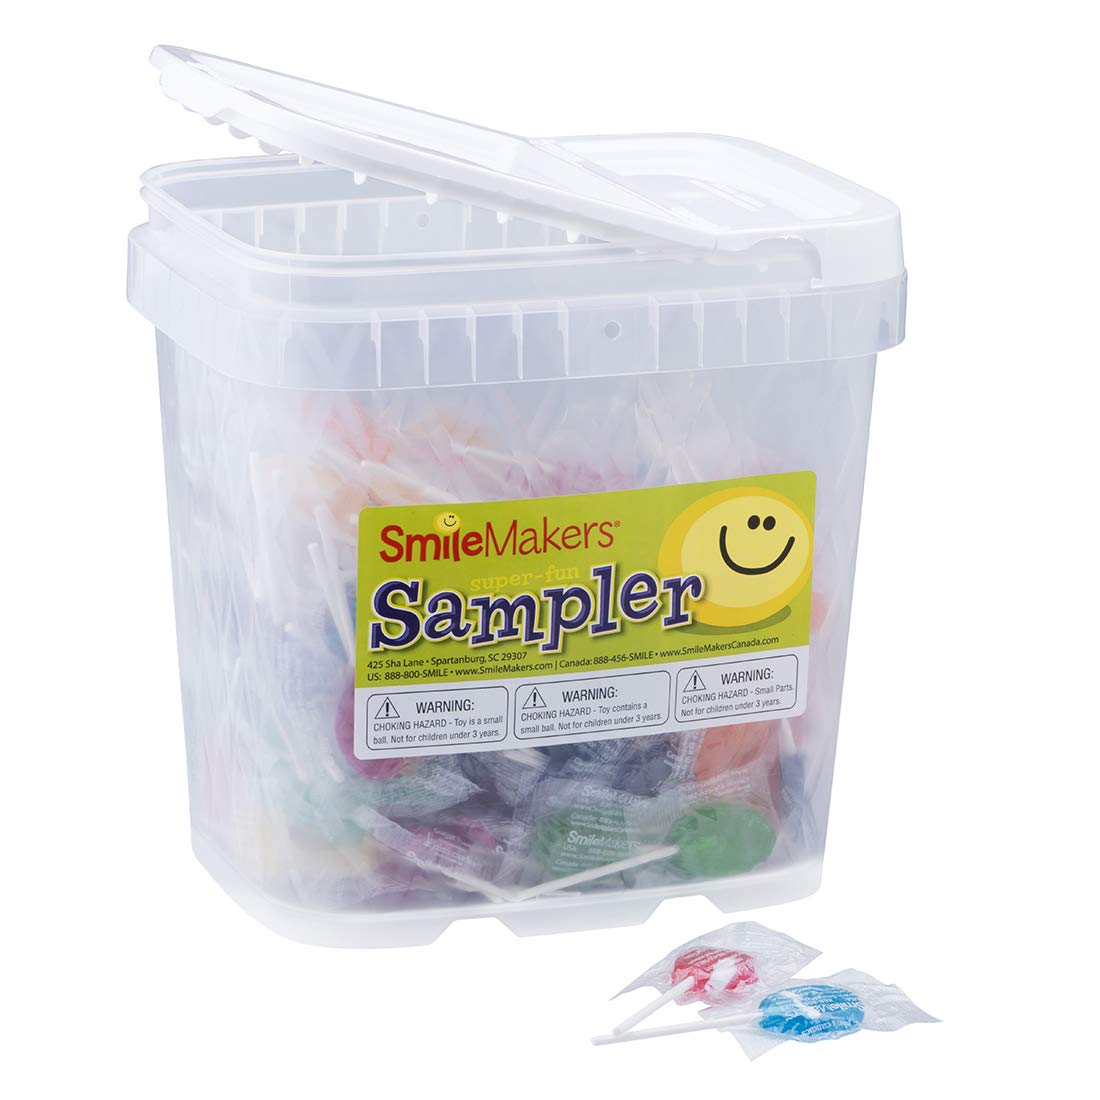 Dr. John's Sugar Free Lollipop Sampler - 300 per pack by SmileMakers